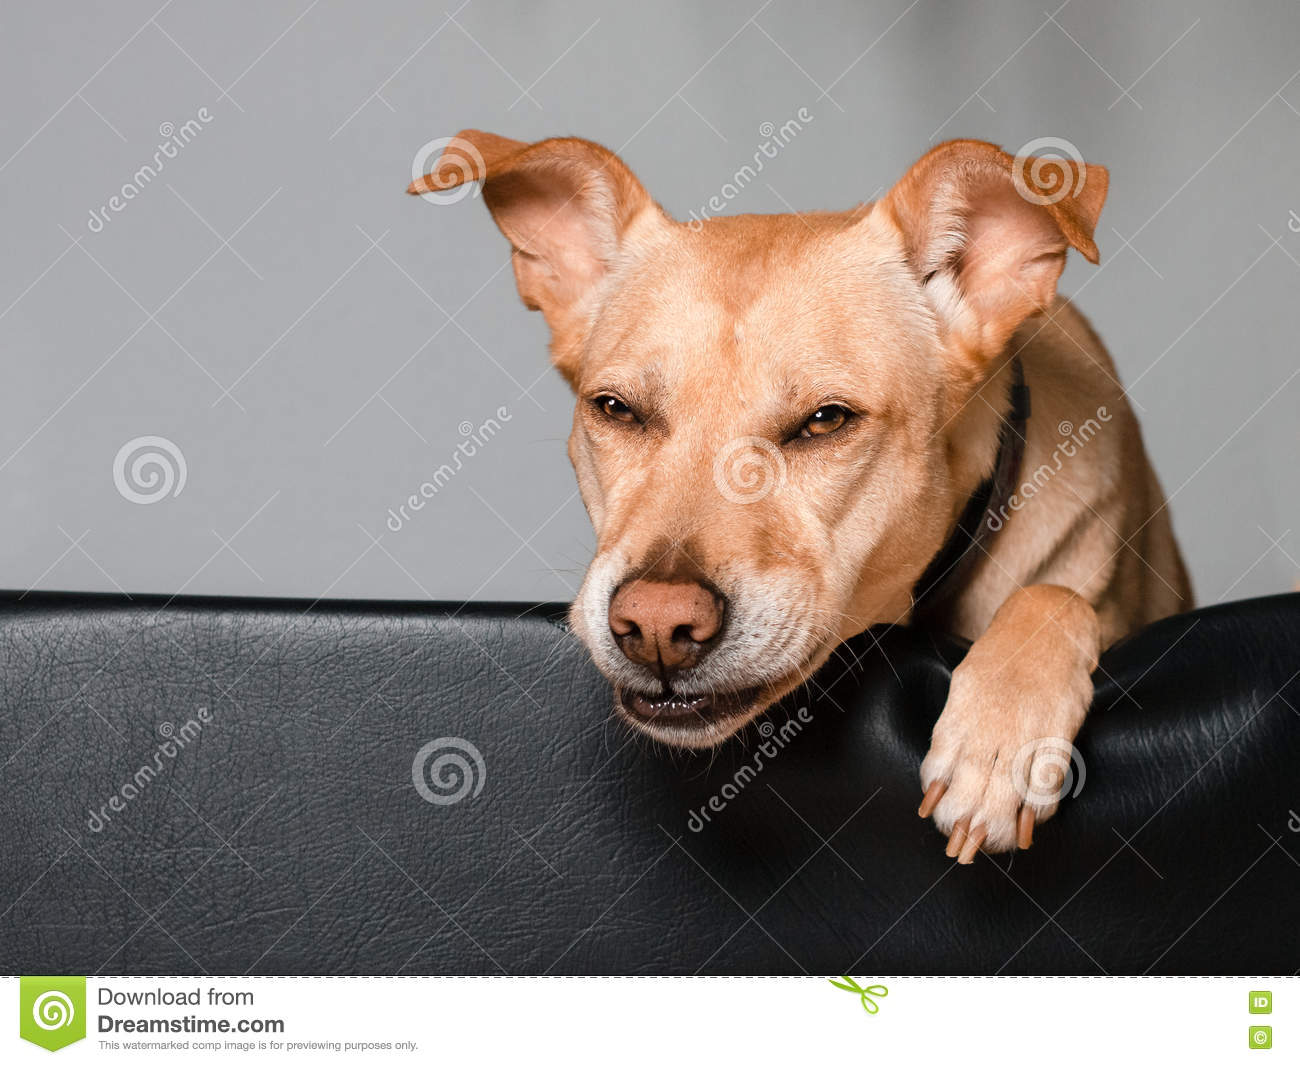 Funny Dog Laying In His Bed Stock Photo Cartoondealer